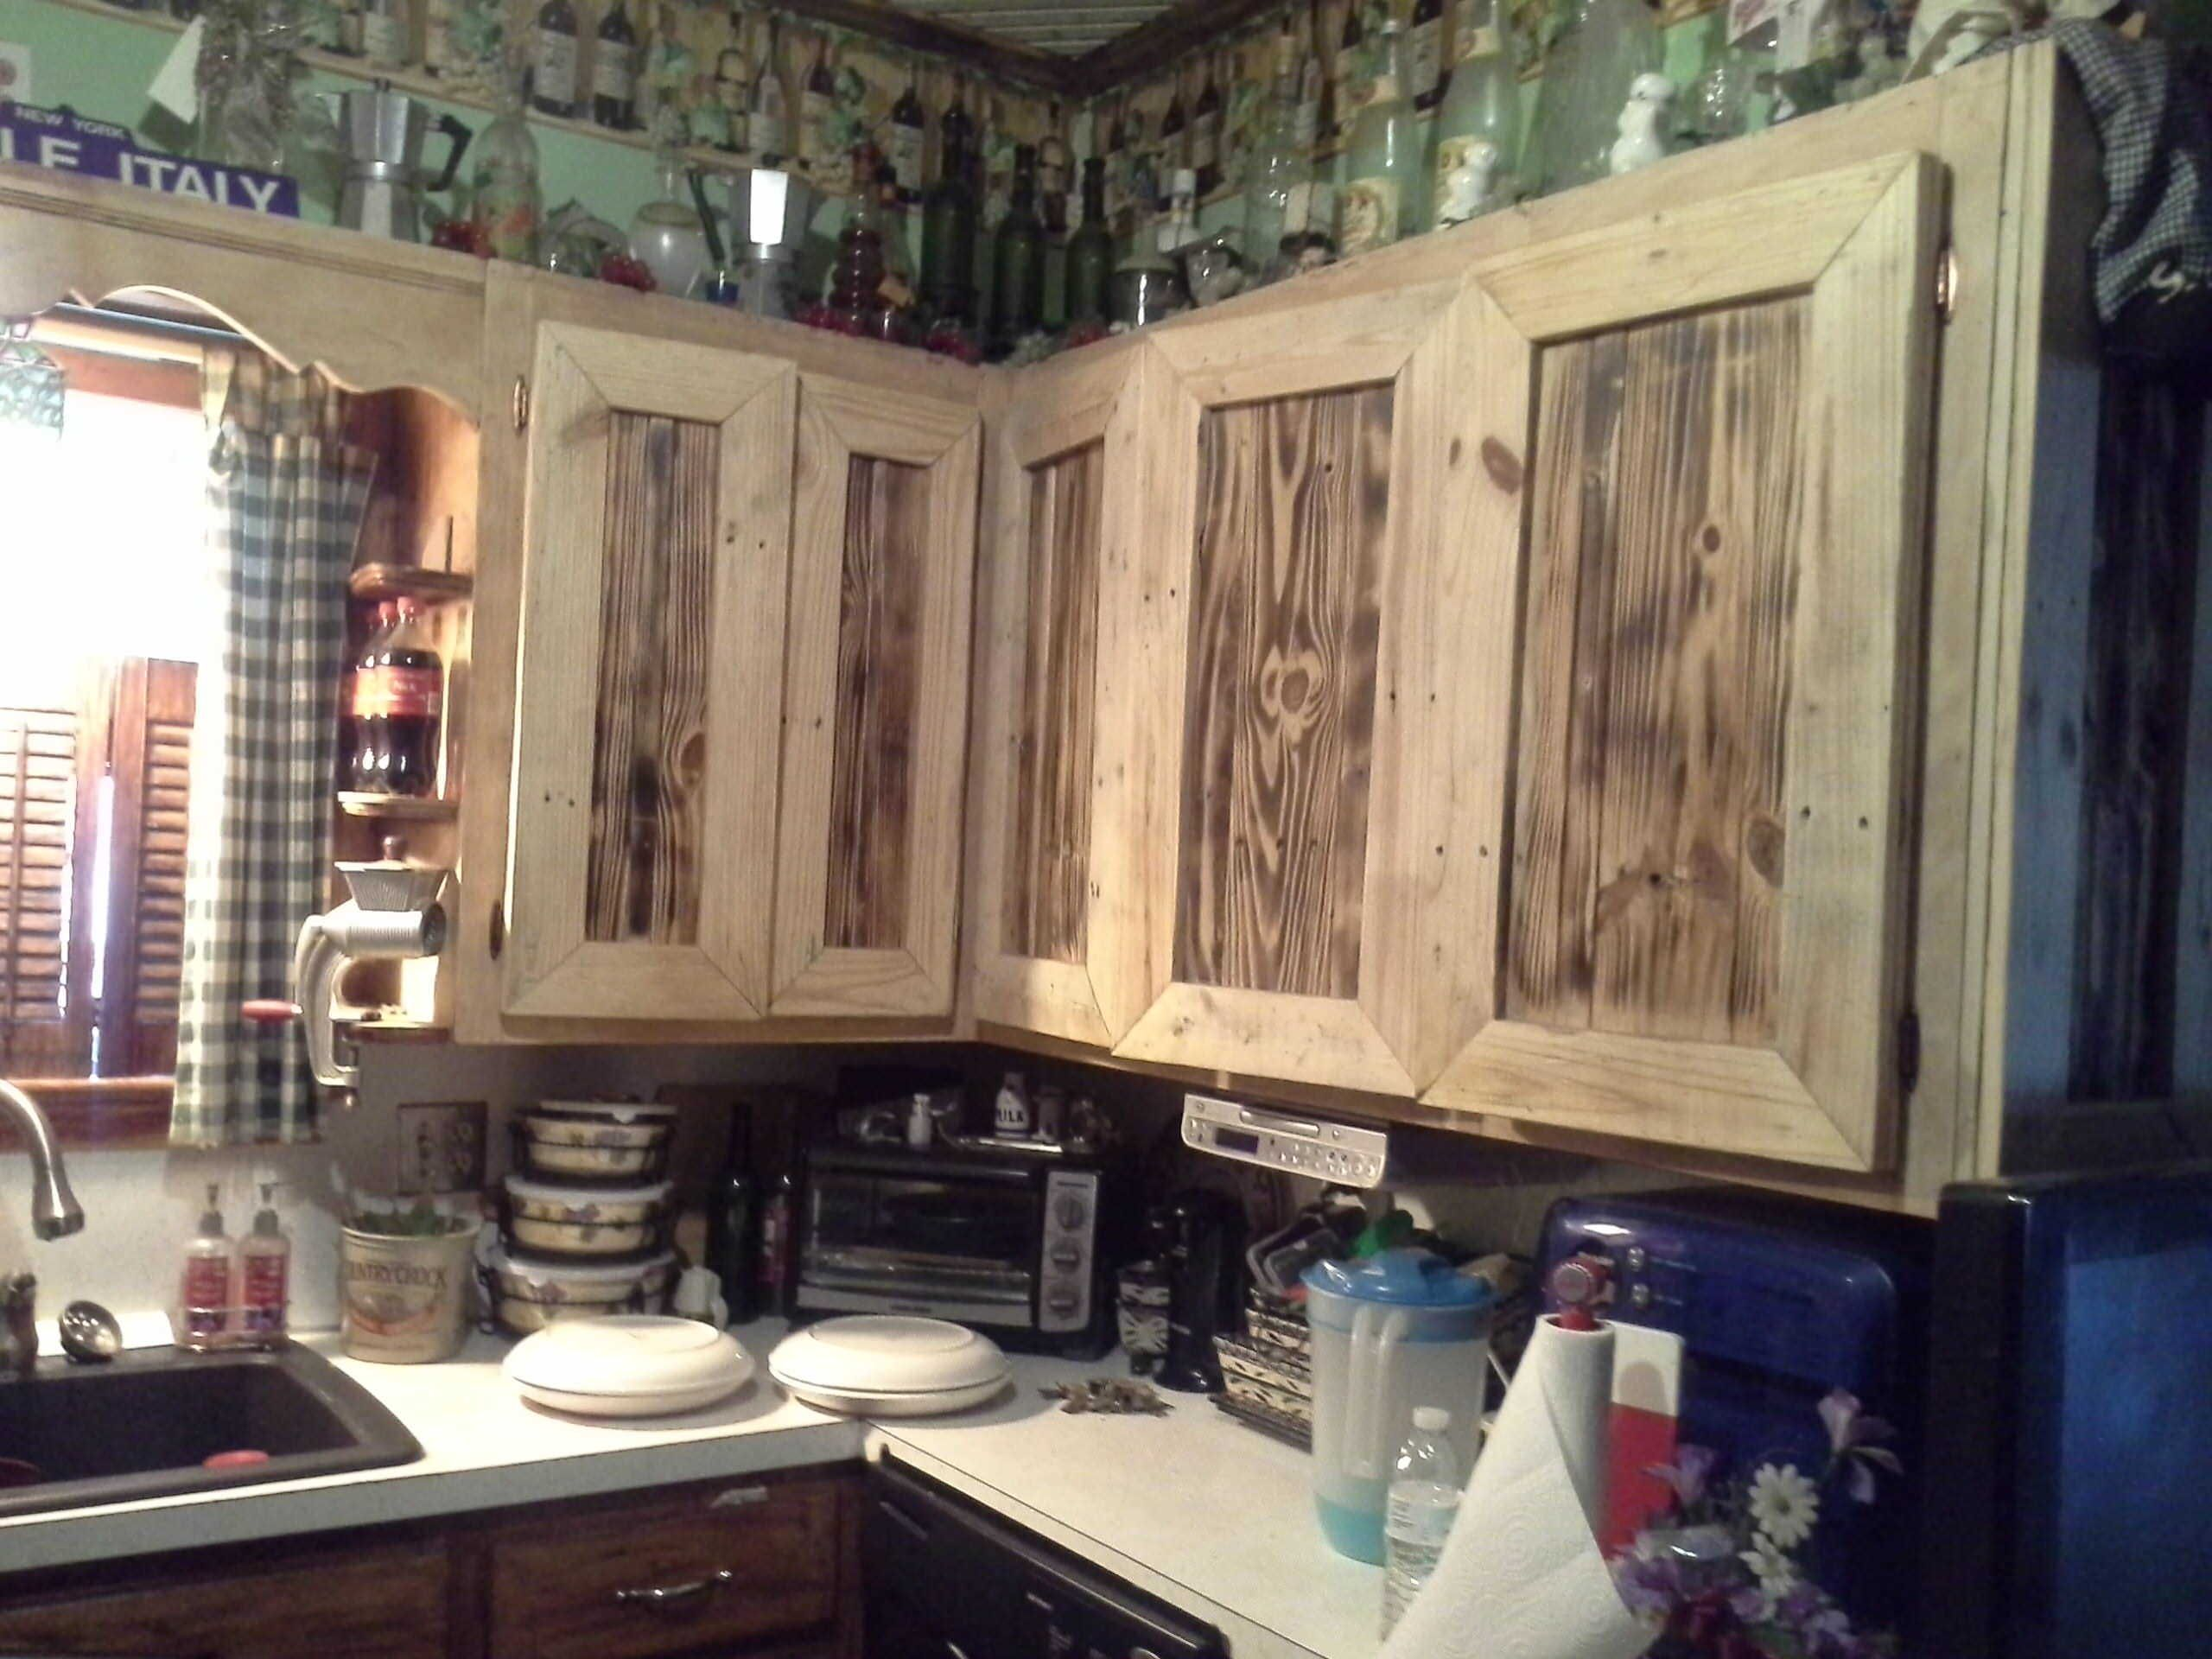 These Kitchen Items Were Made From Recycled Wooden Pallets The Lights Were Made From Small Pallet Kitchen Cabinets Pallet Kitchen Kitchen Cabinet Door Styles